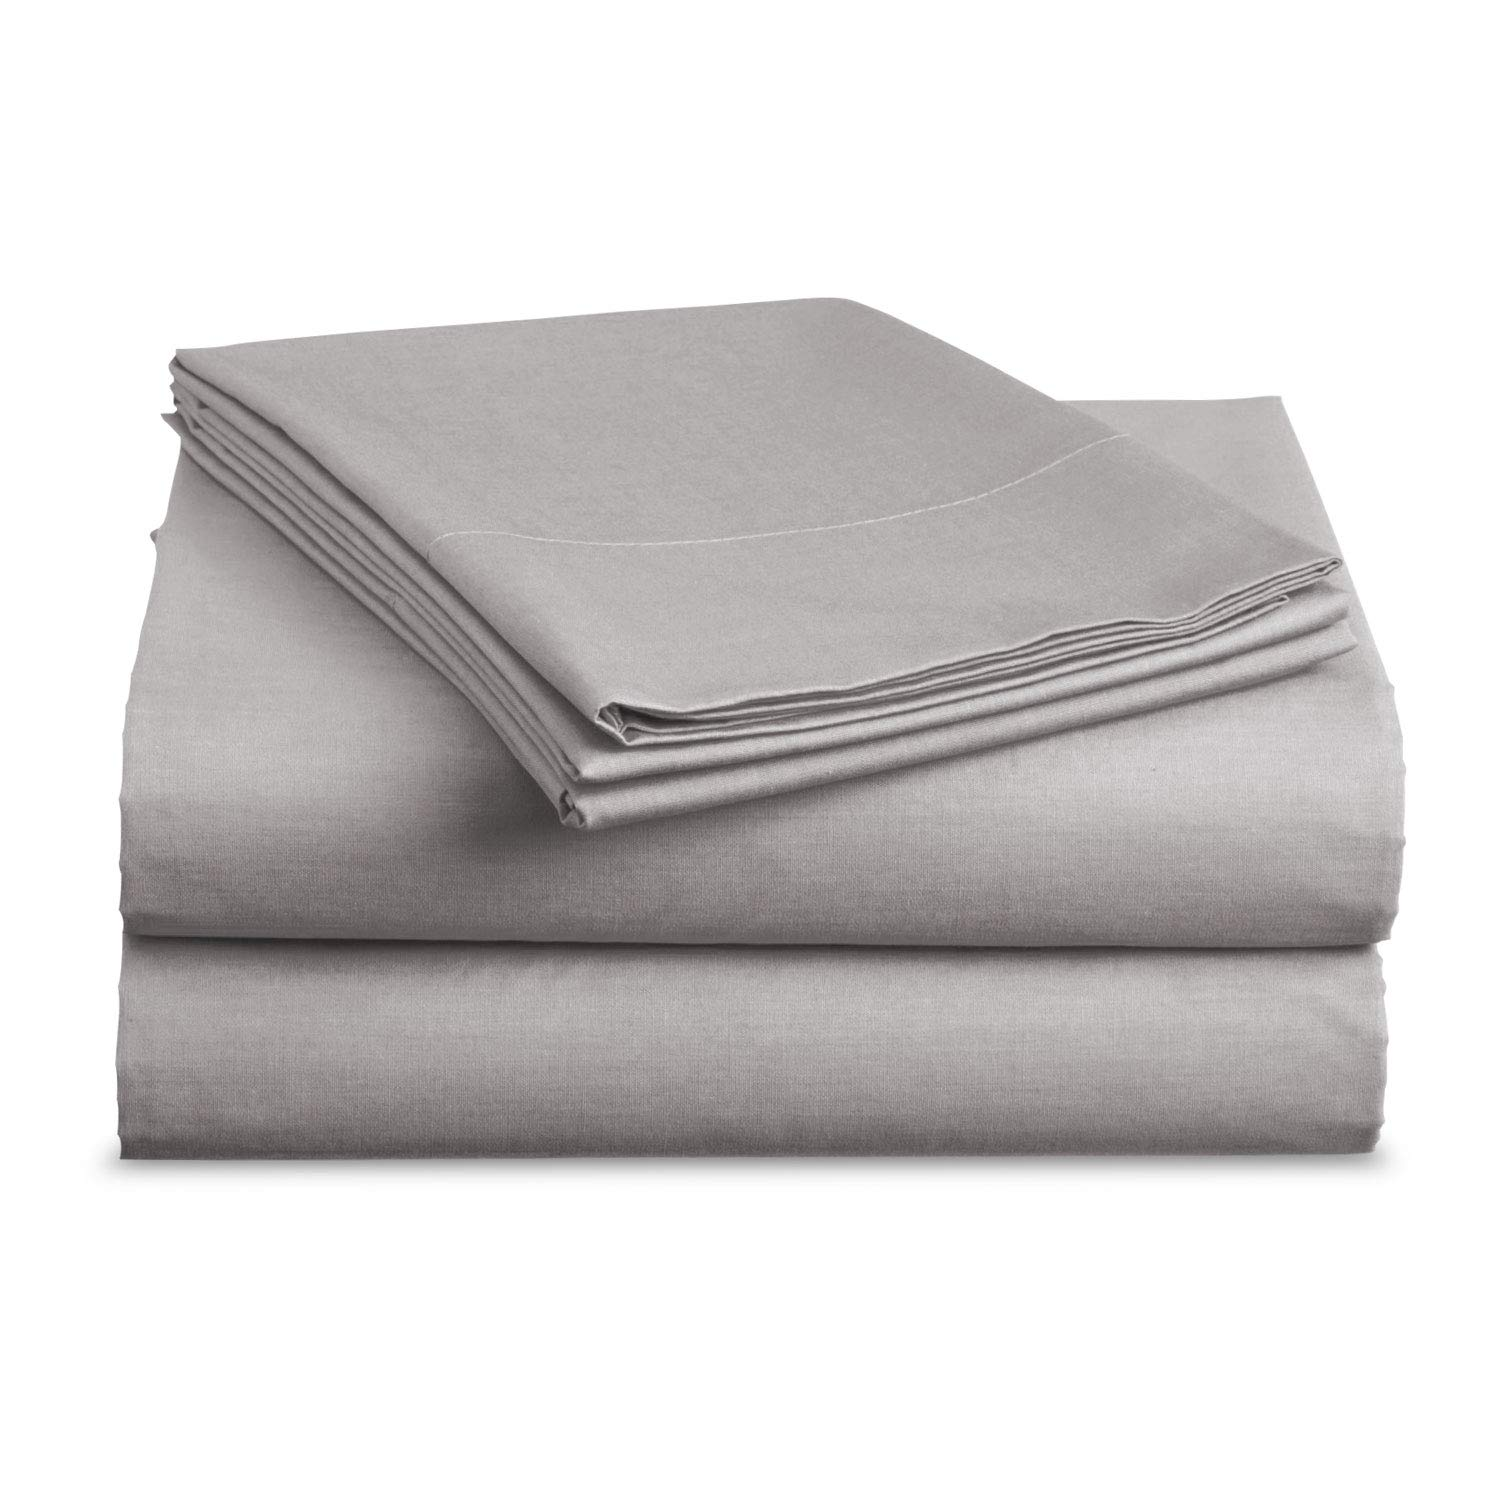 BASIC CHOICE Bed Sheet Set - Brushed Microfiber 2000 Bedding - Wrinkle, Fade, Stain Resistant - Hypoallergenic - 4 Piece (King, Gray)